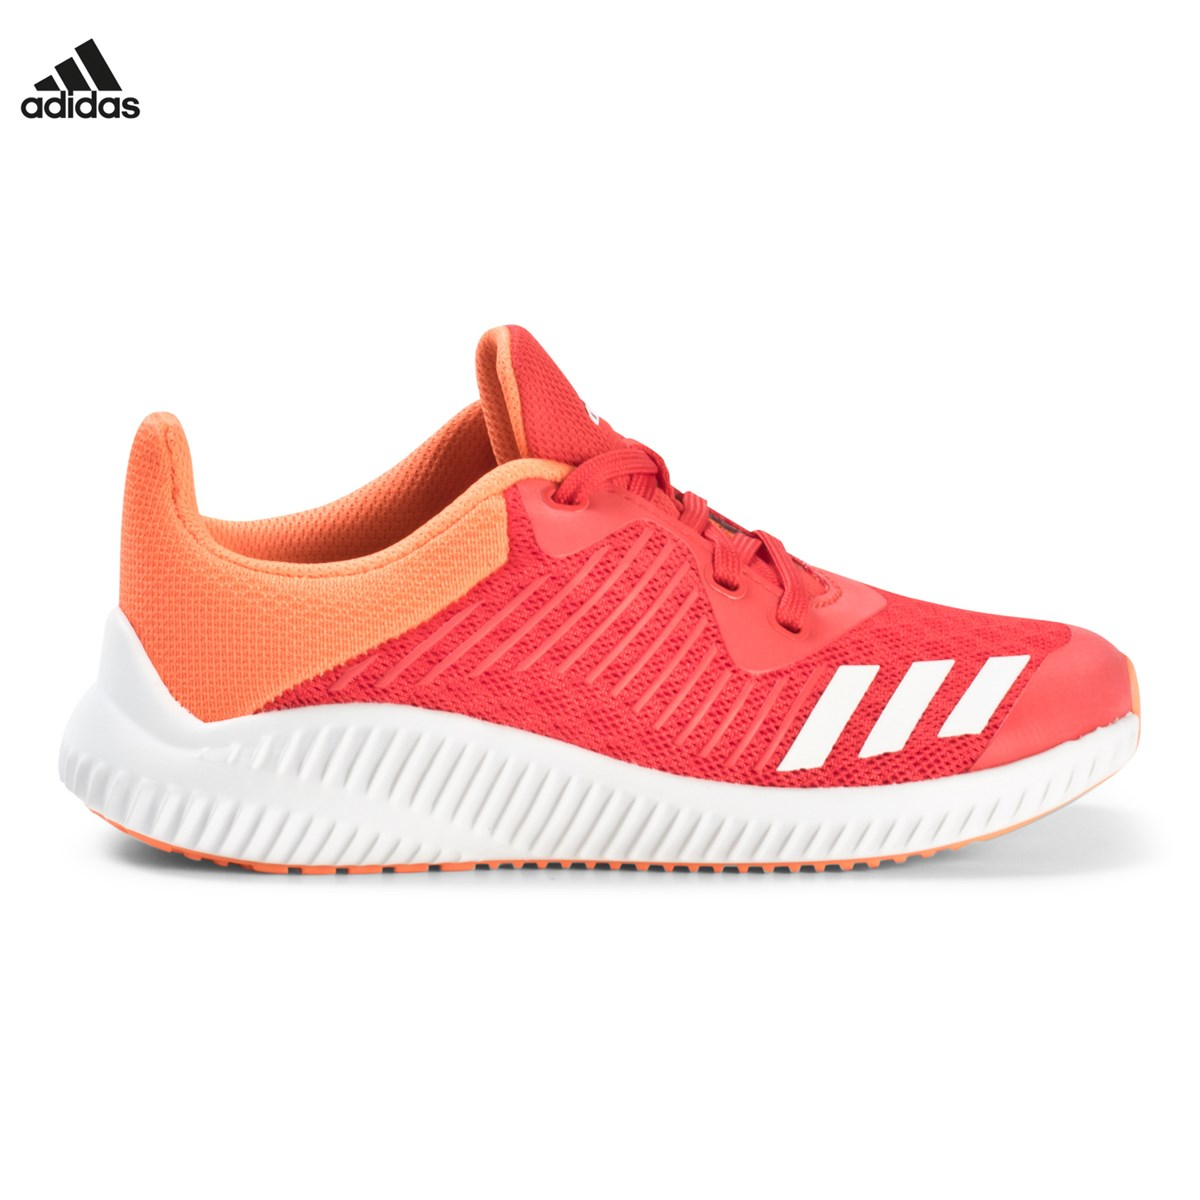 de1809a53 adidas Performance - Red and Orange FortaRun Trainers - Babyshop.dk